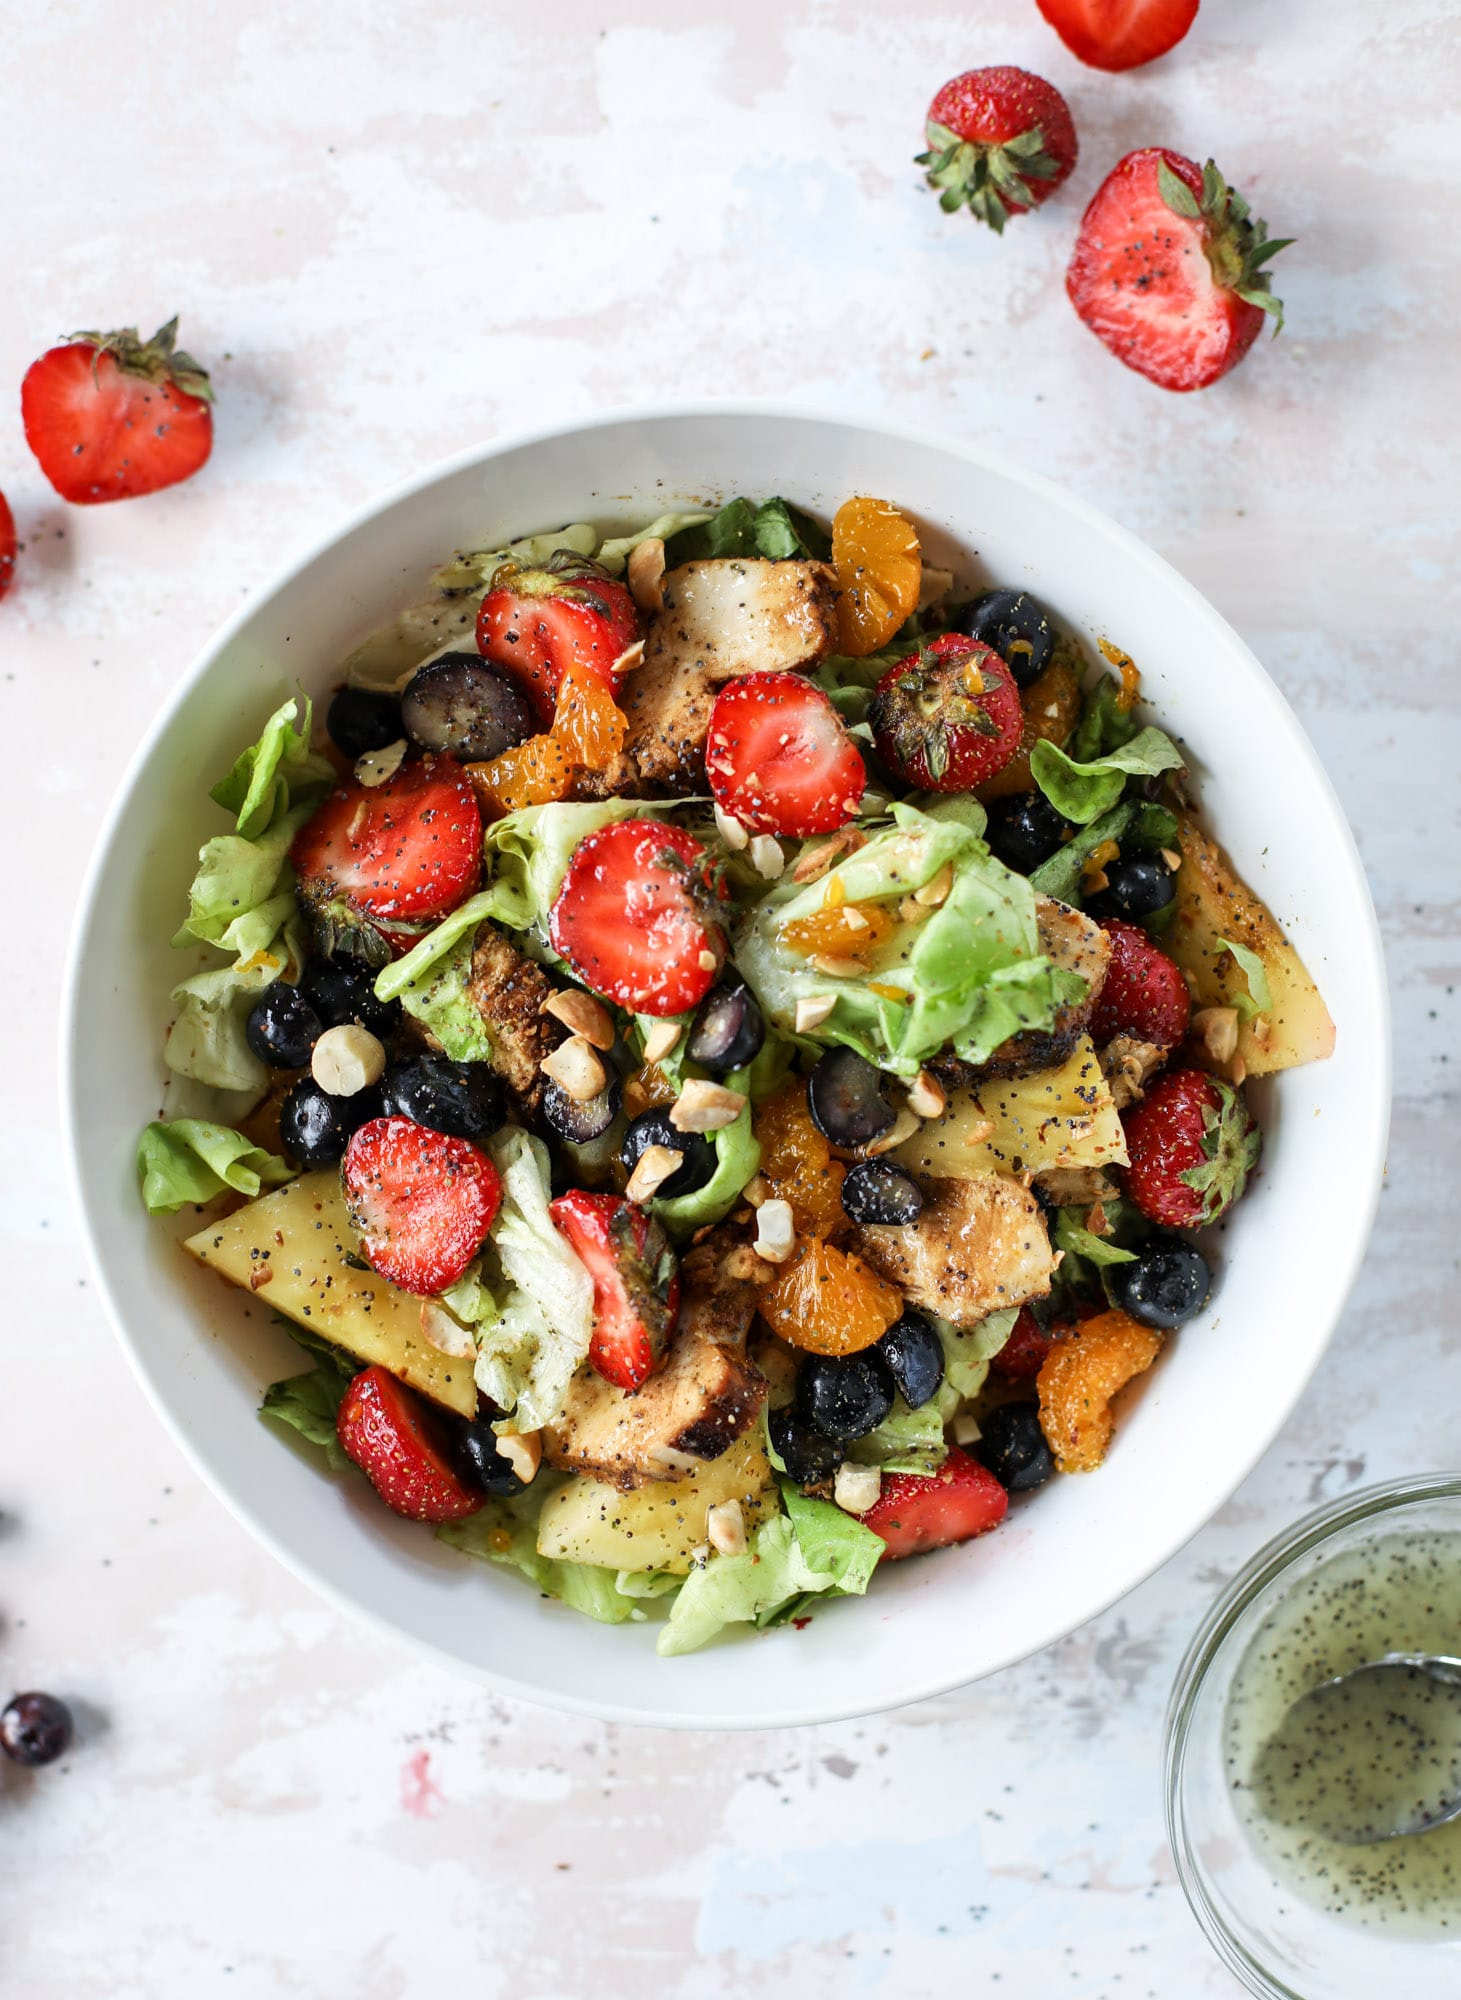 This copycat Panera strawberry poppyseed salad is absolutely delicious and refreshing and perfect for summer! Serve it with grilled chicken like the recipe here or swap for shrimp or fish. I howsweeteats.com #strawberry #poppyseed #salad #chicken #panera #copycat